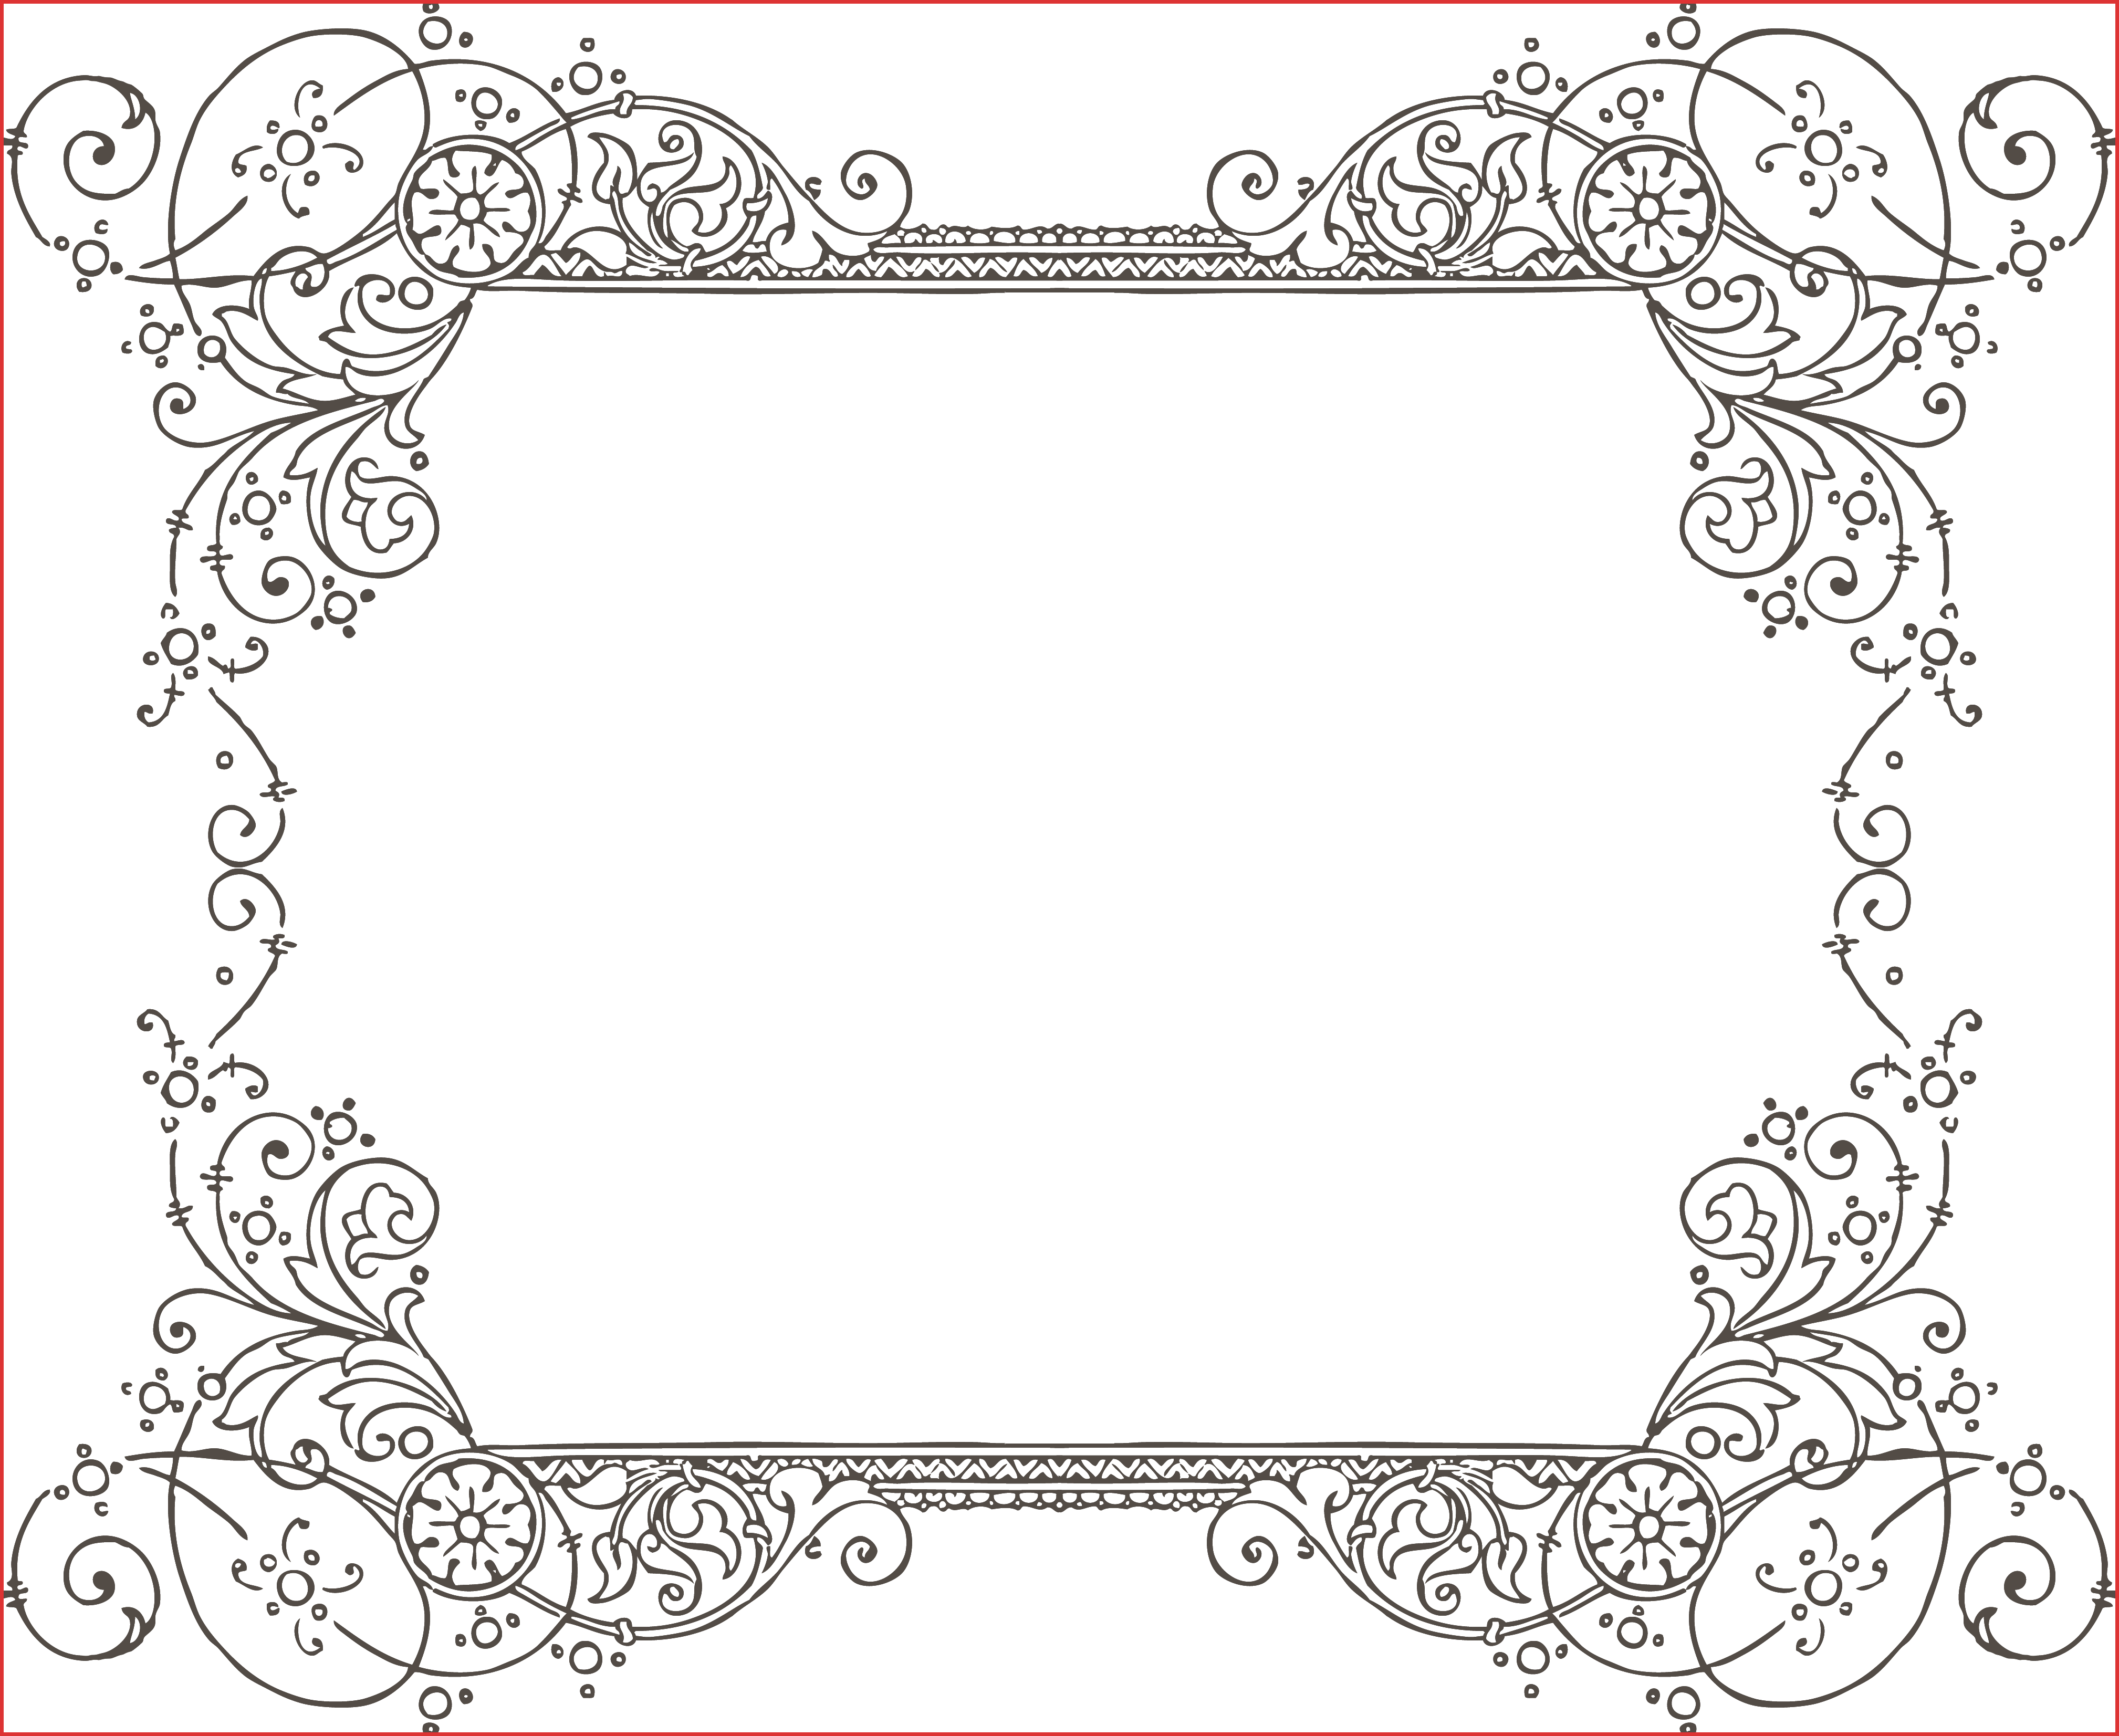 Classic clipart photo frame. Vintage border free vector